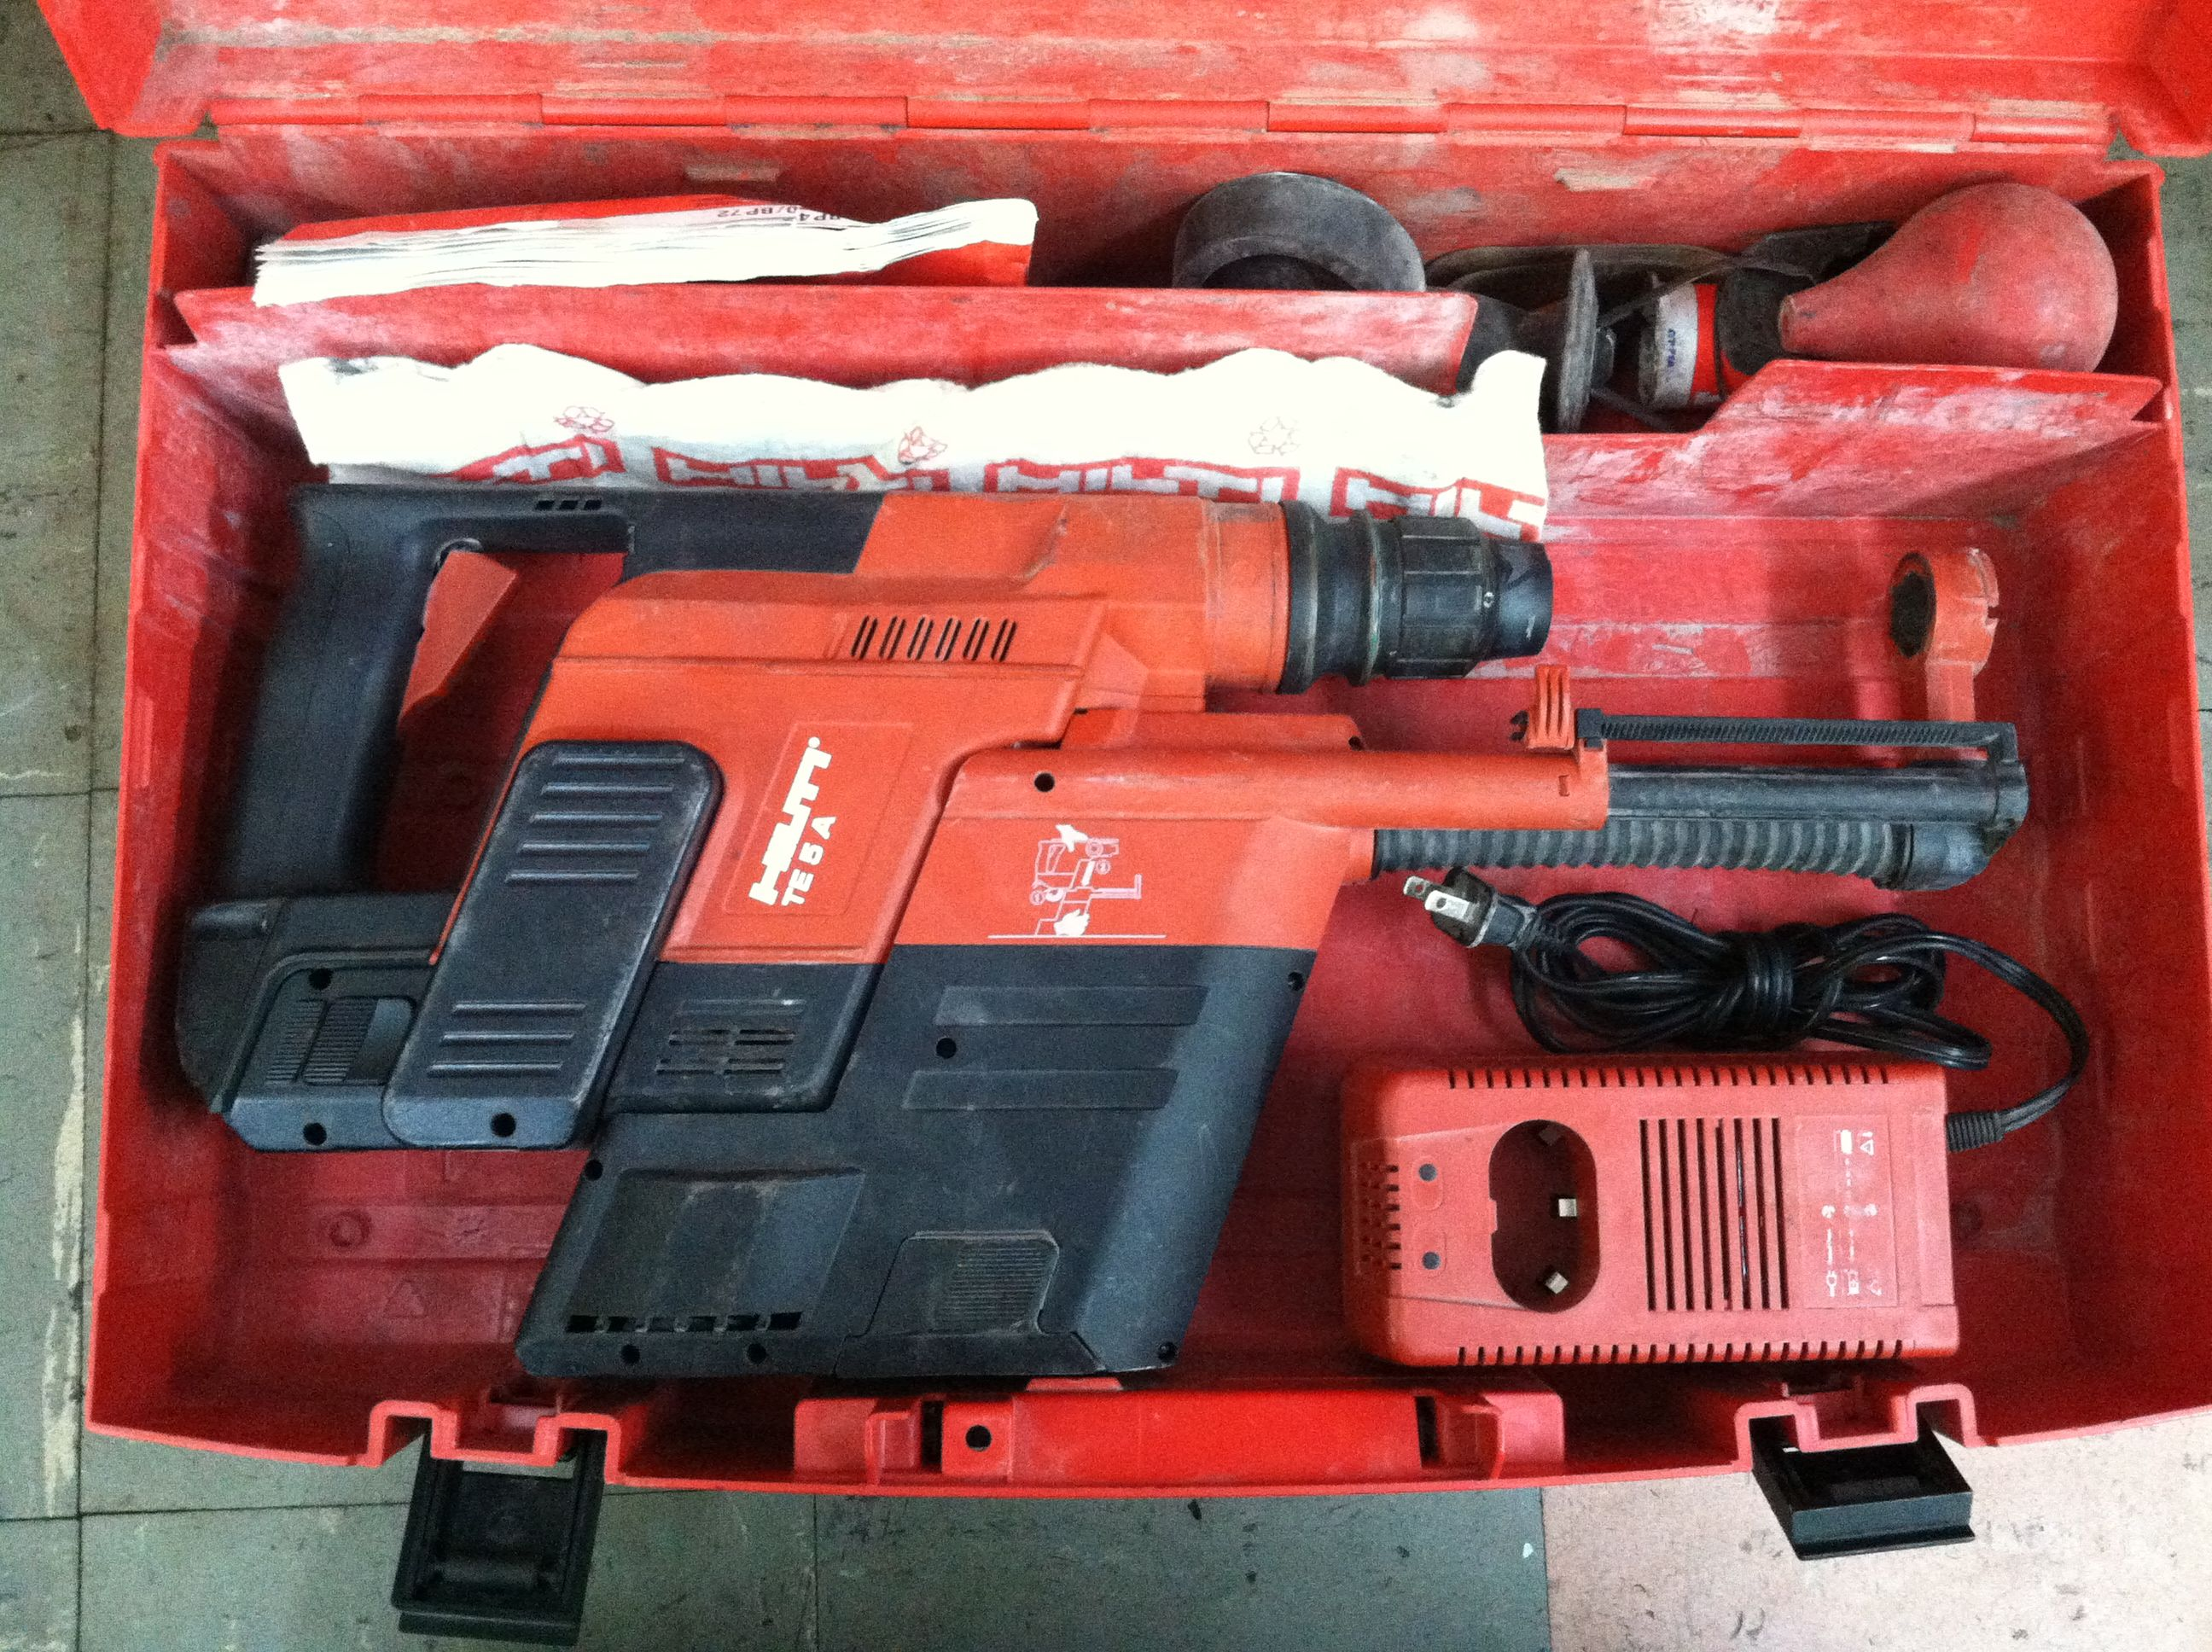 Hilti TE5A 24v cordless drill with TE5DRS dust removal